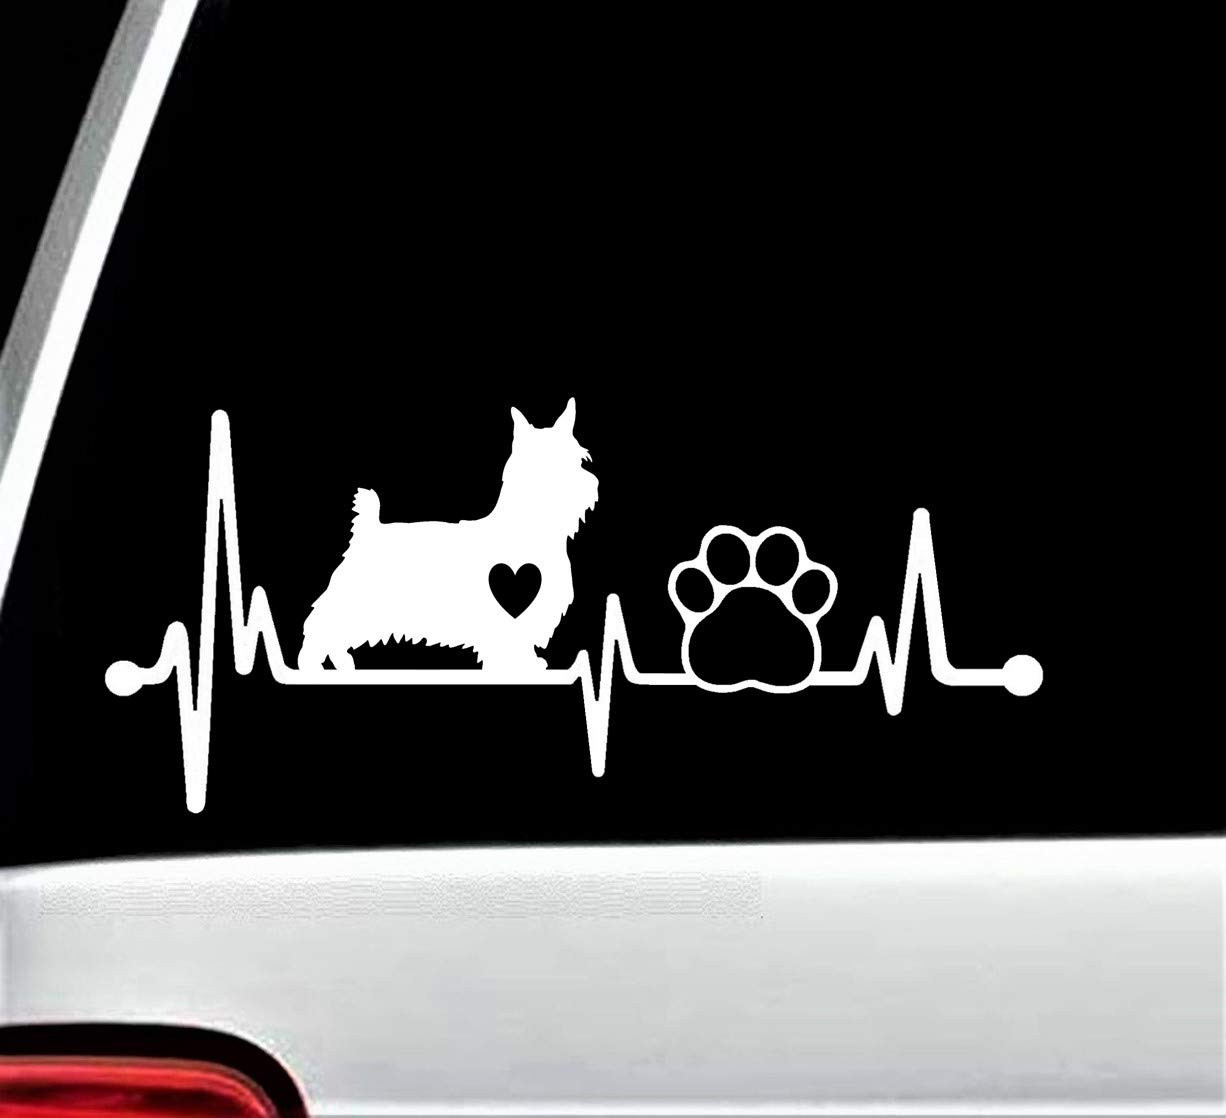 Westie Terrier Heartbeat Lifeline Decal Sticker 8 Car for Window It Free shipping anywhere in the nation is very popular